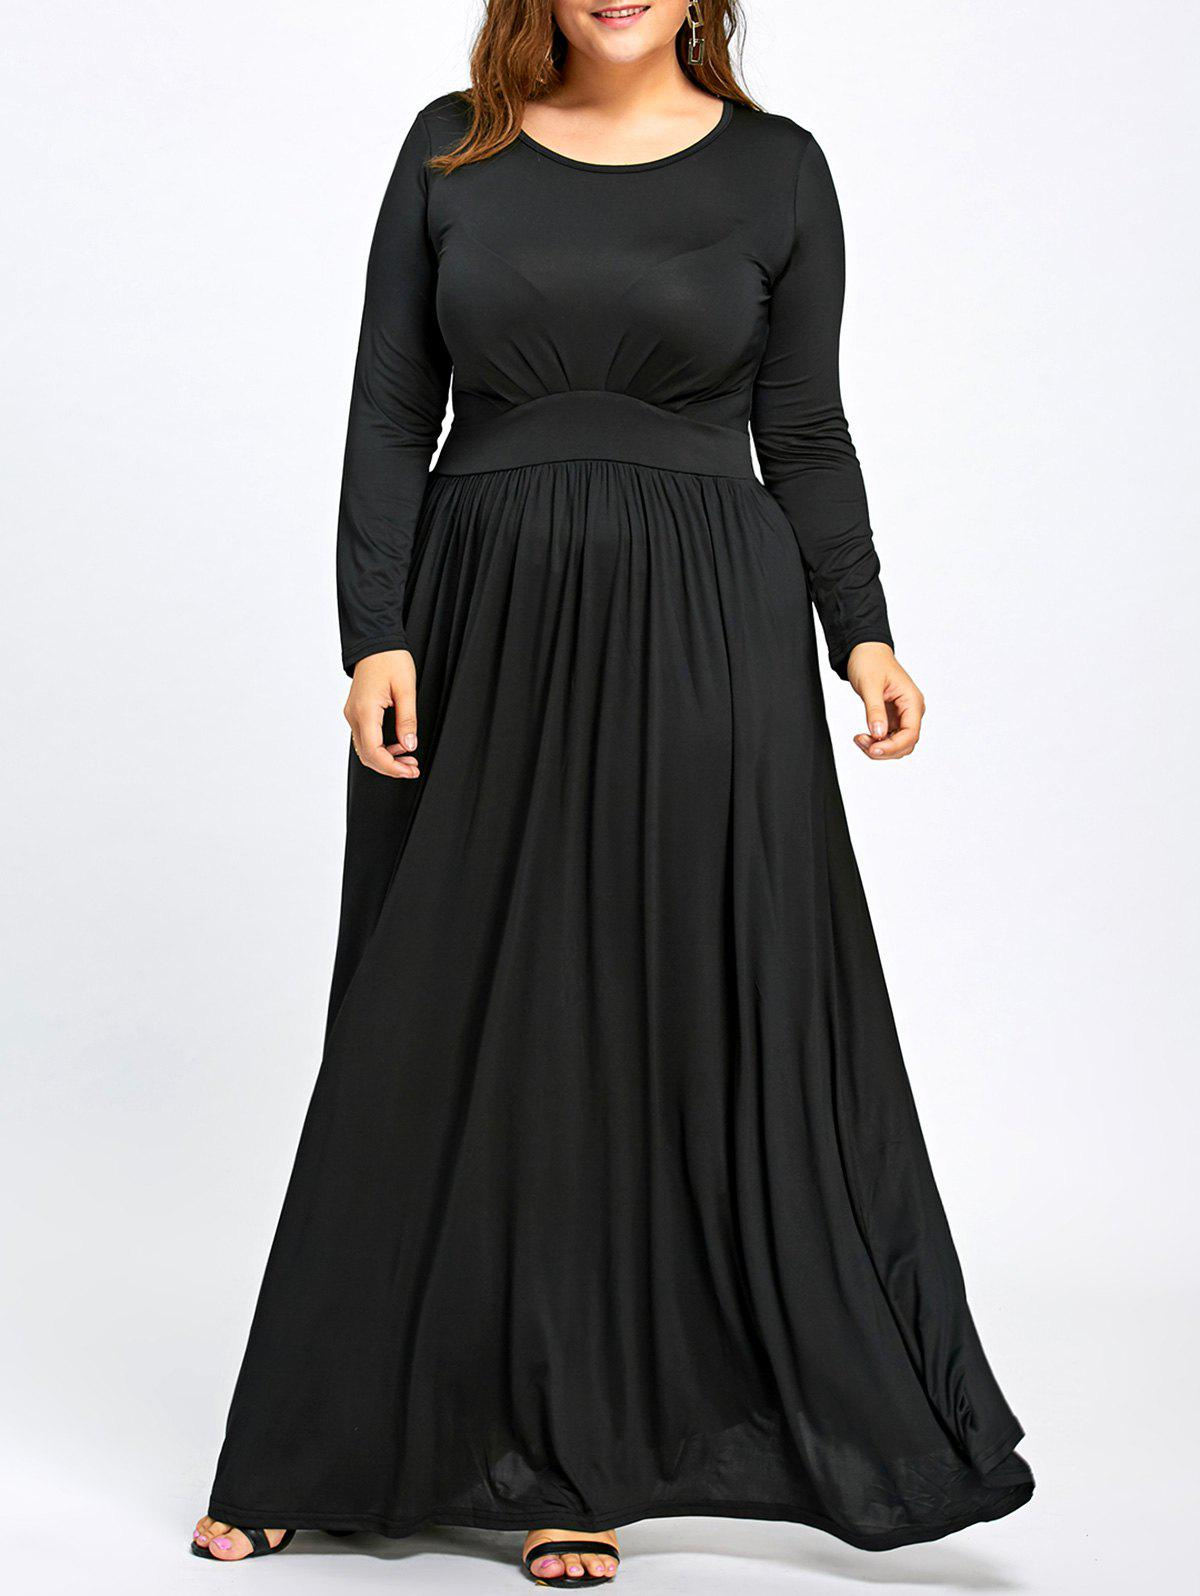 Long Sleeve Plus Size Floor Length Dress - BLACK 2XL